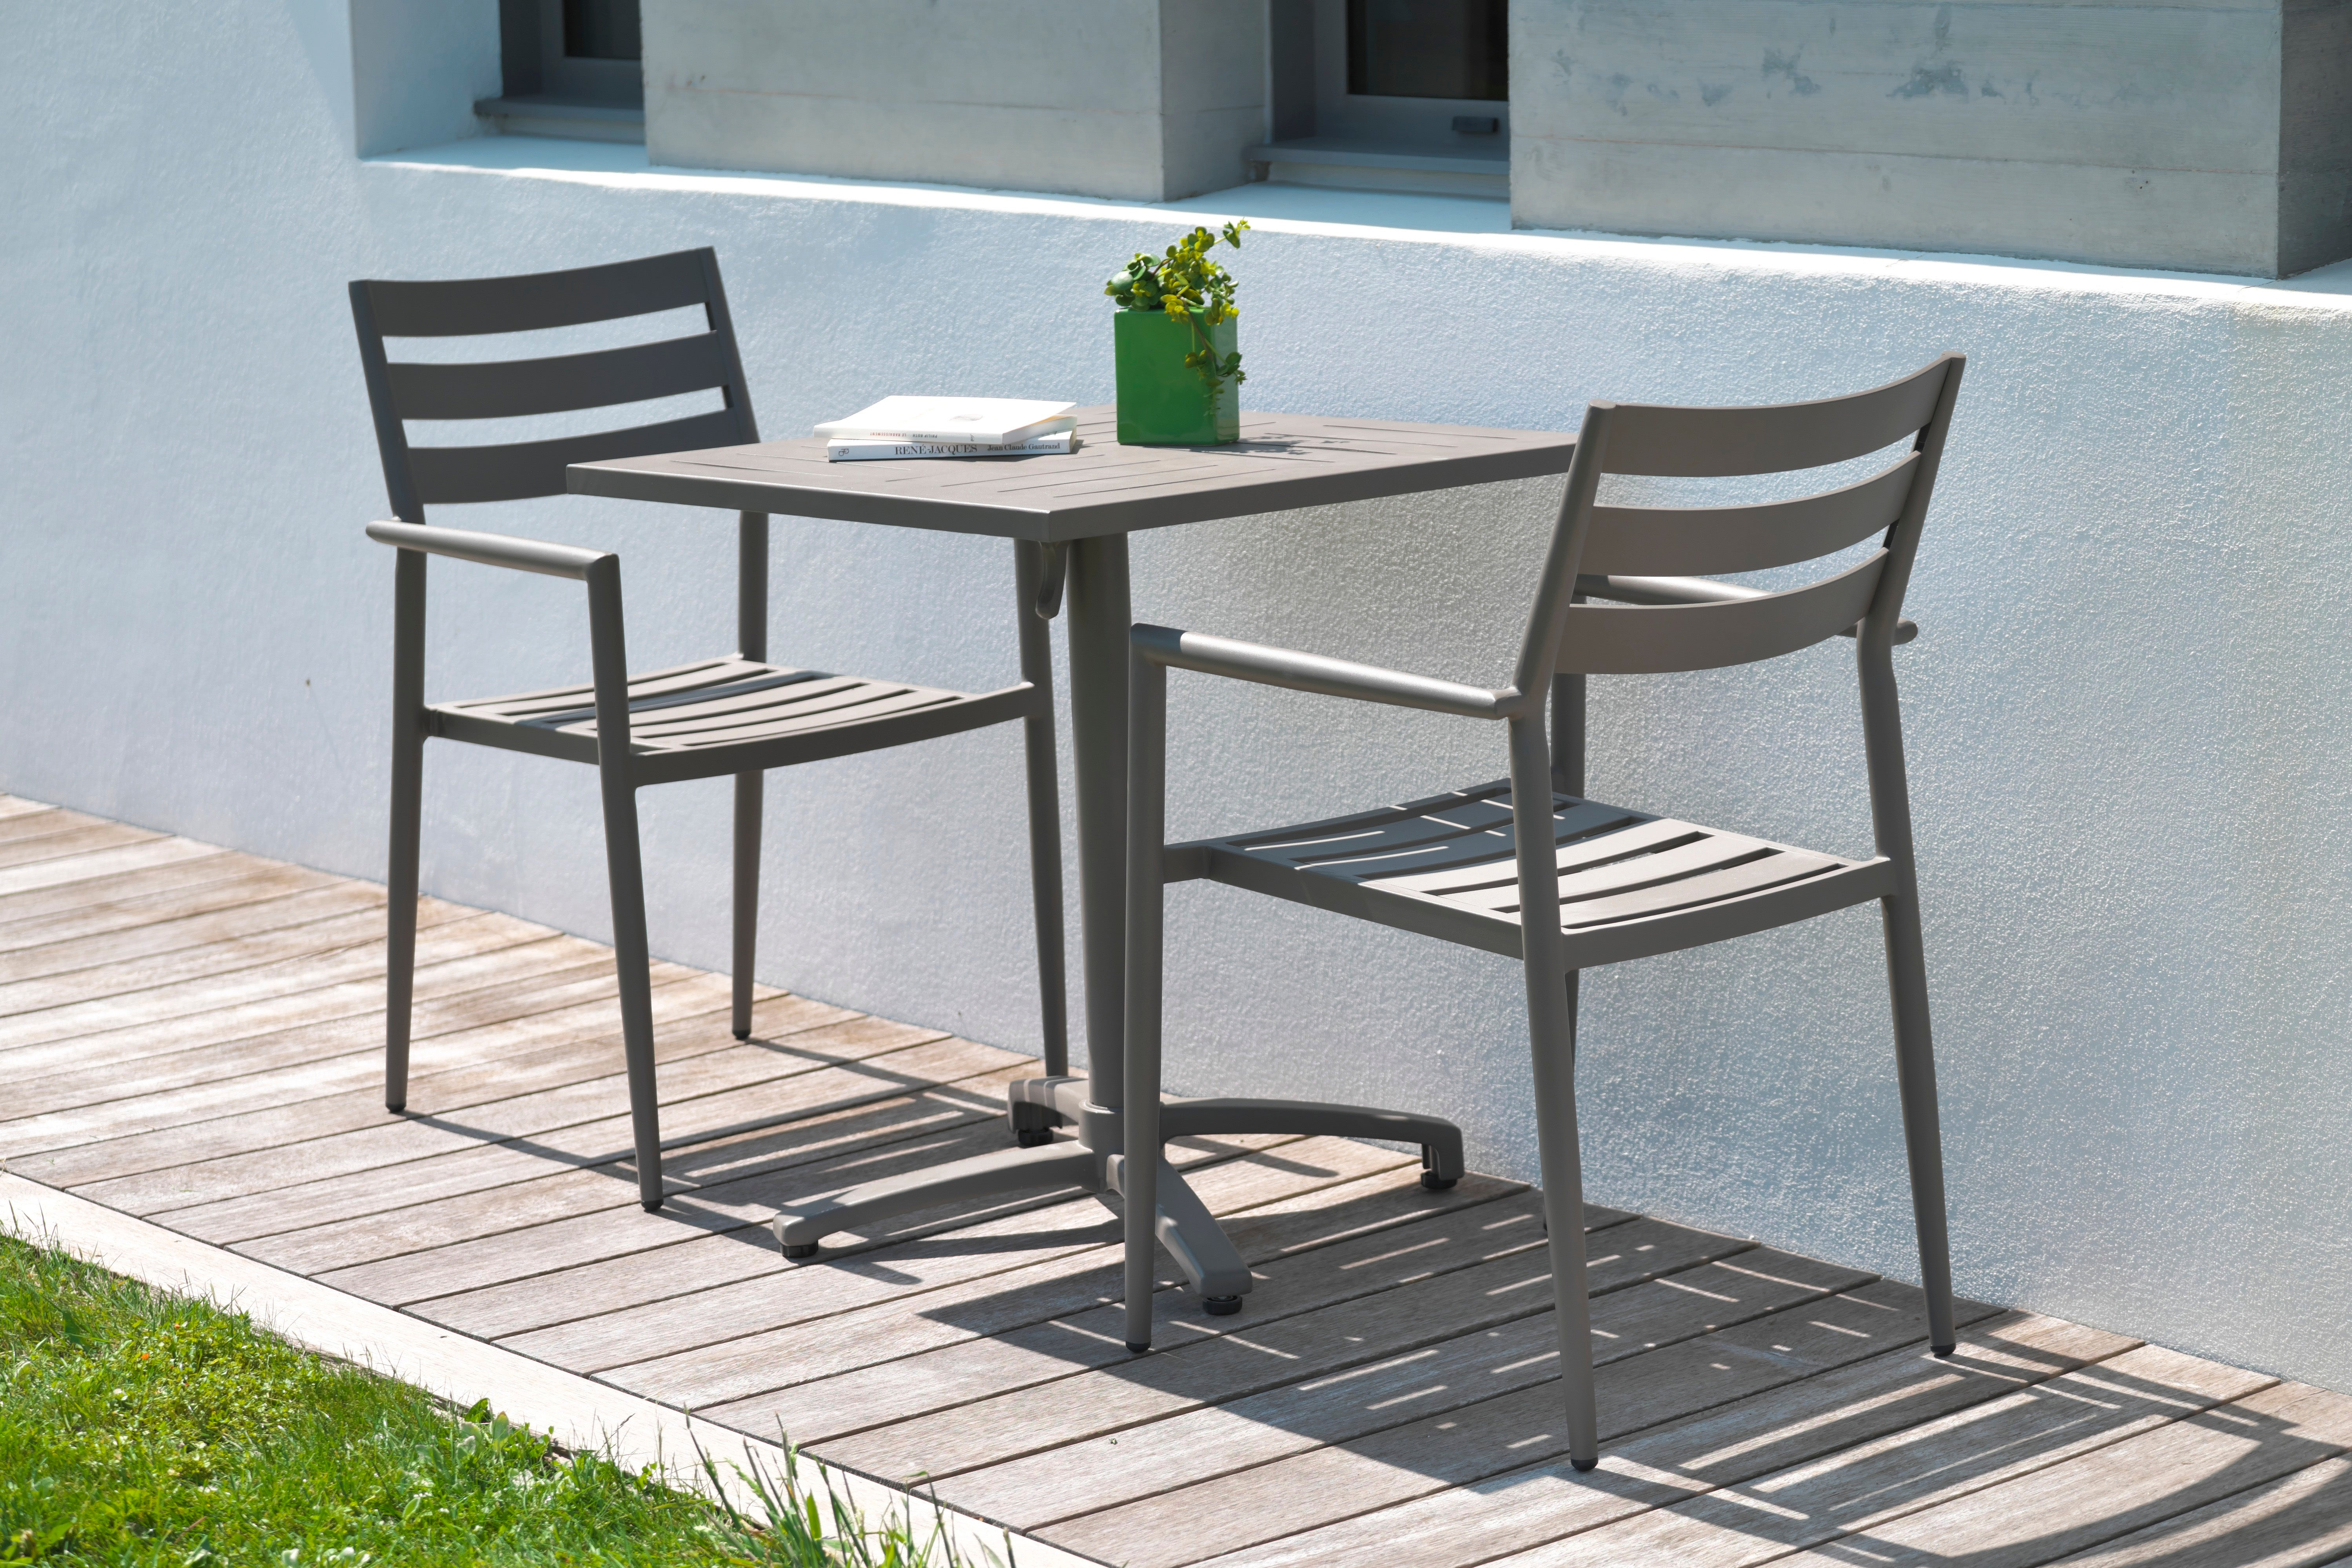 Chaise Table Jardin Leroy Merlin 2 Personnes